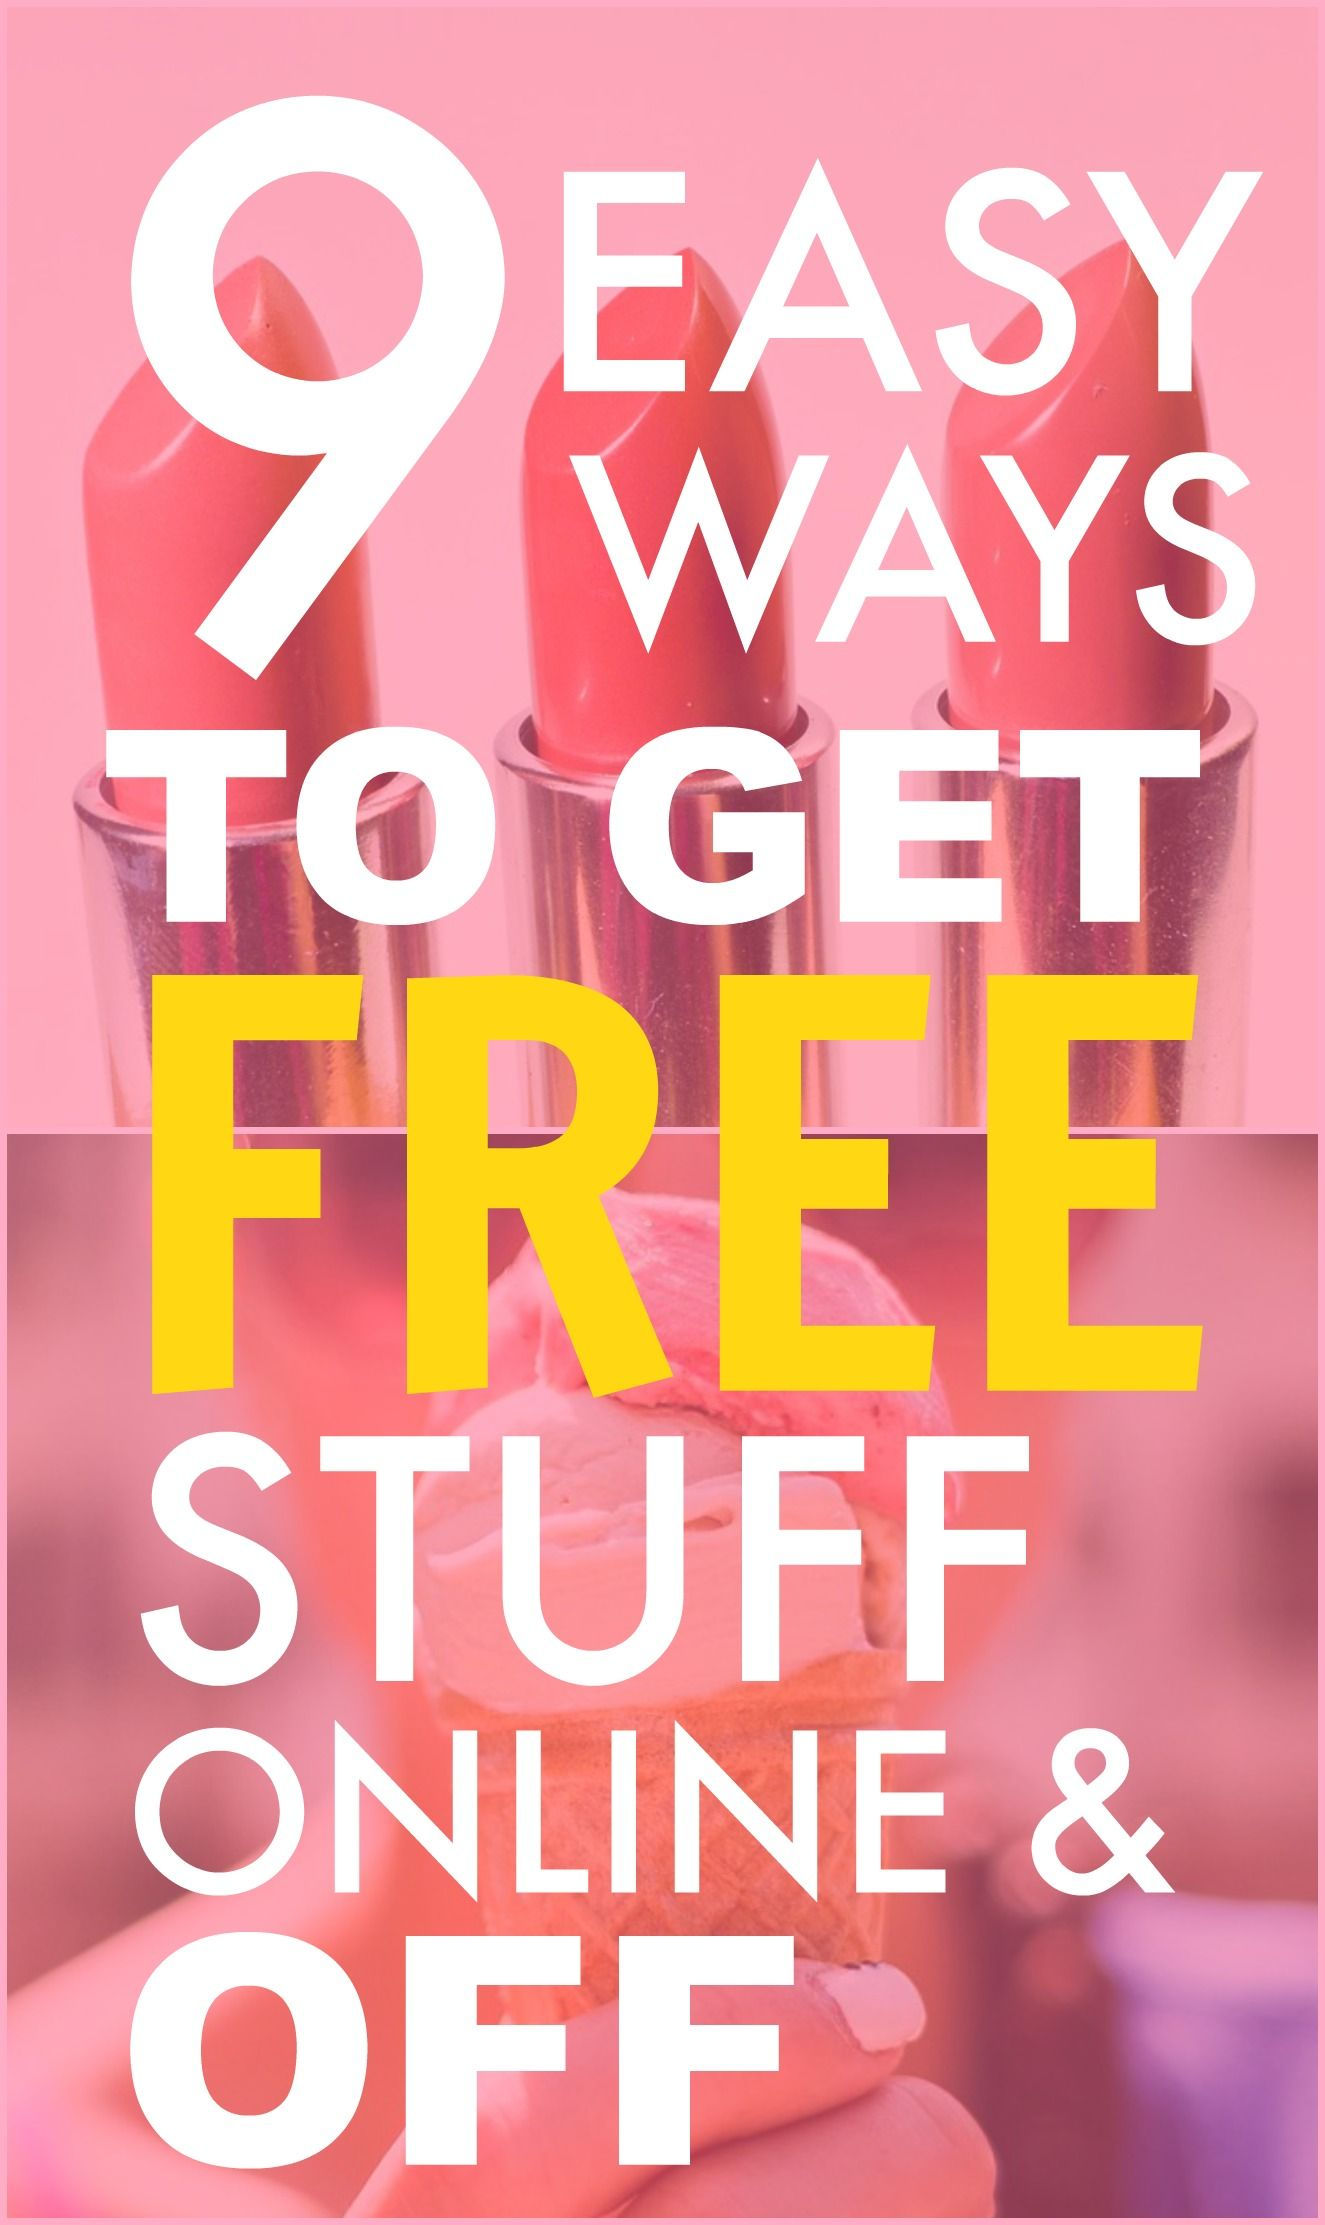 How to Get Free Stuff Online with No Caveats Get free